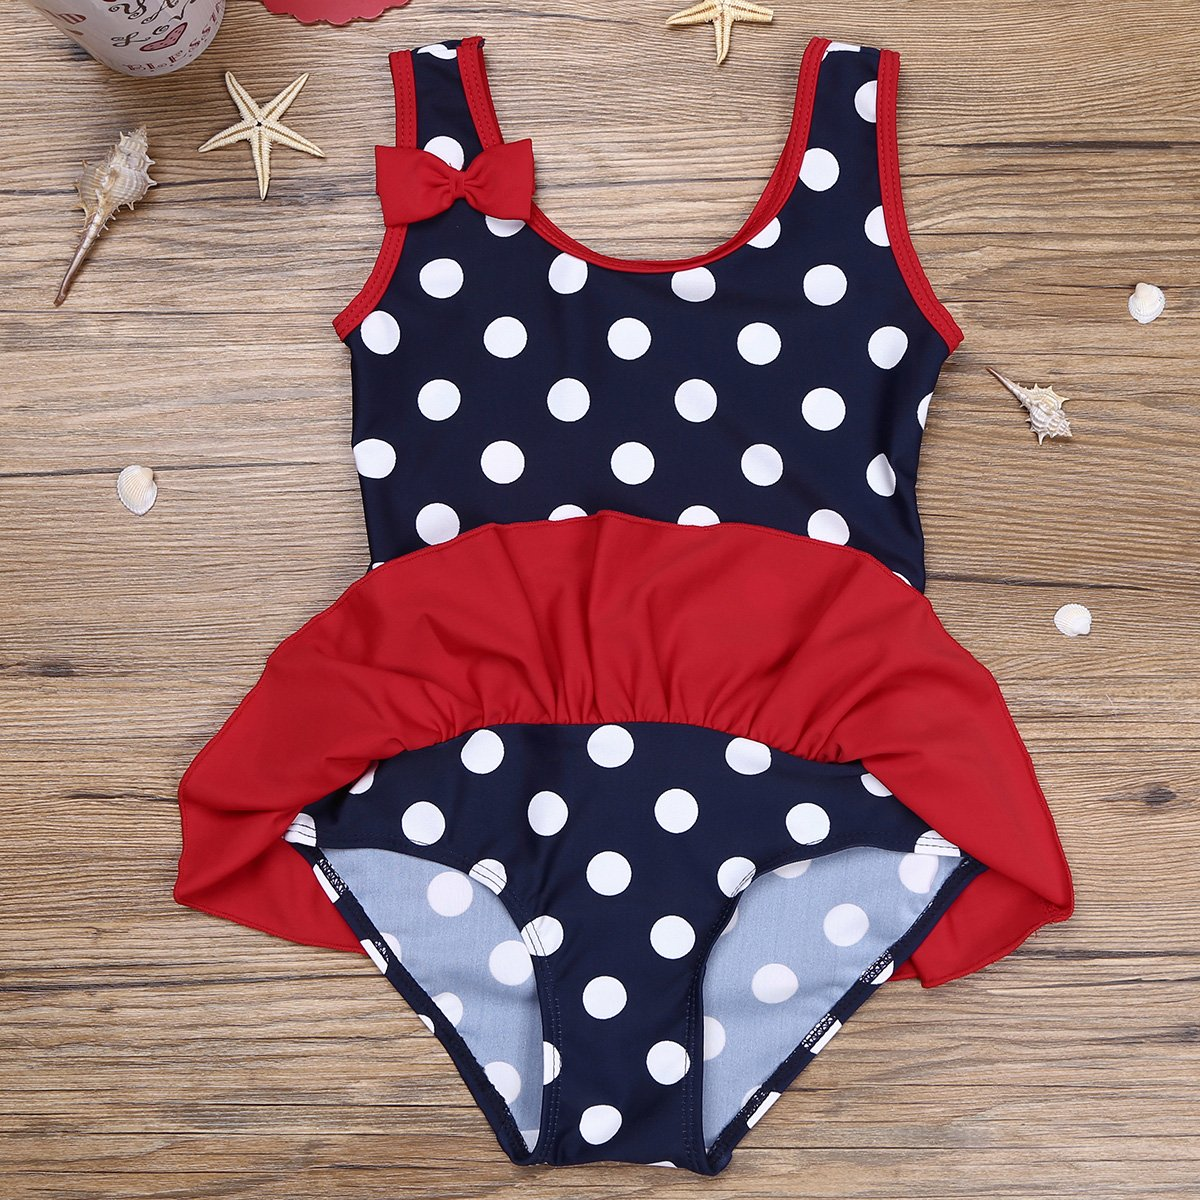 iiniim Infant Baby Girl's One Piece Polka Dots Swimsuit Ruffles Bikini Swimwear Toddler Bathing Suit